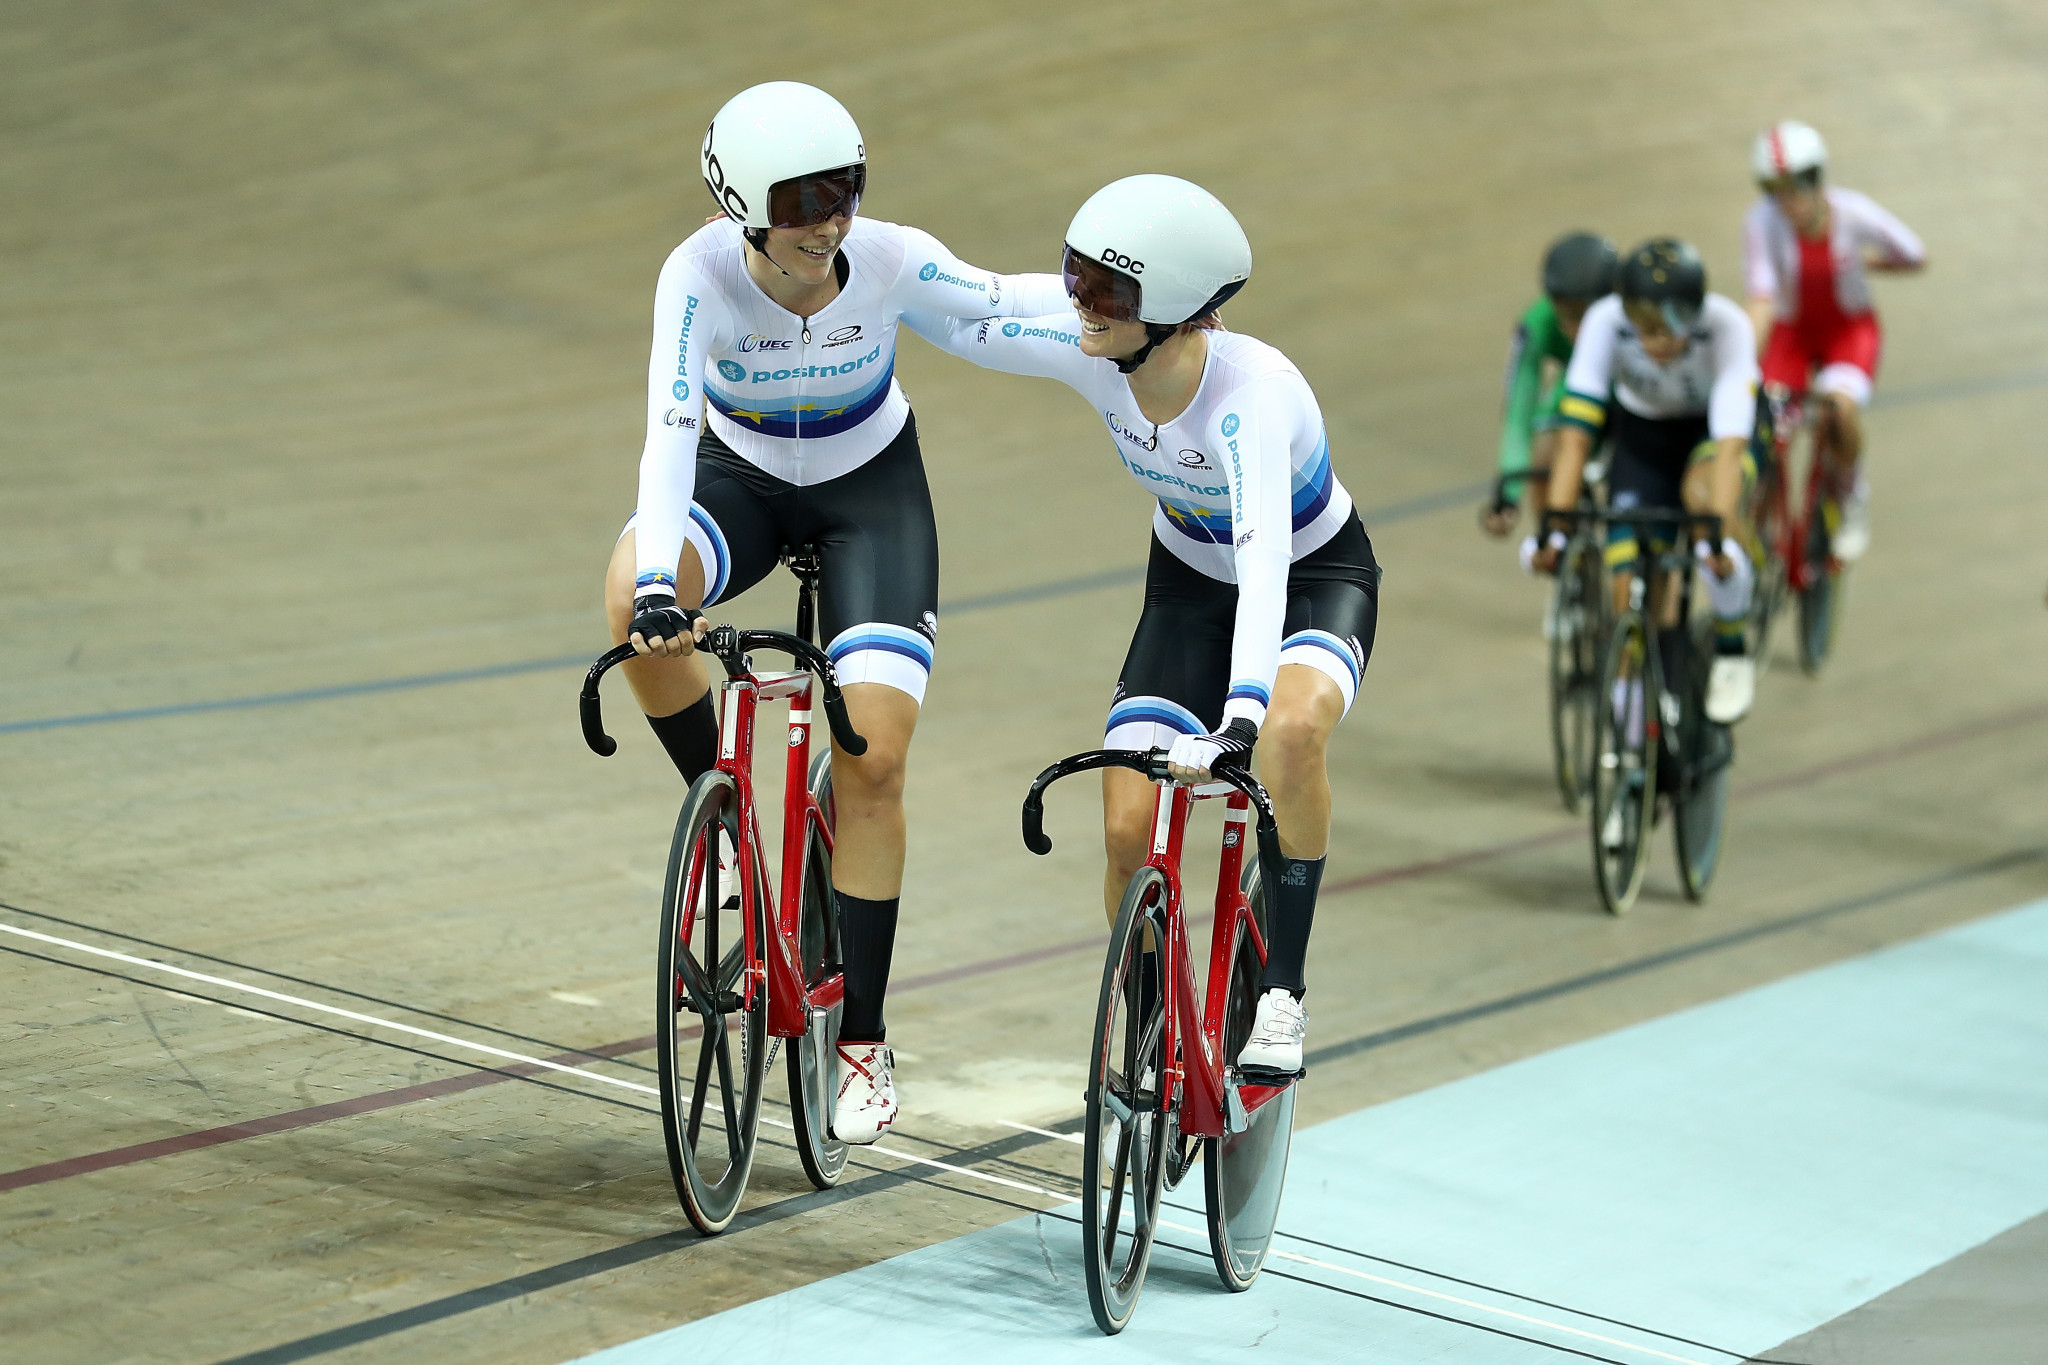 Danish double on final day of UEC European Track Championships